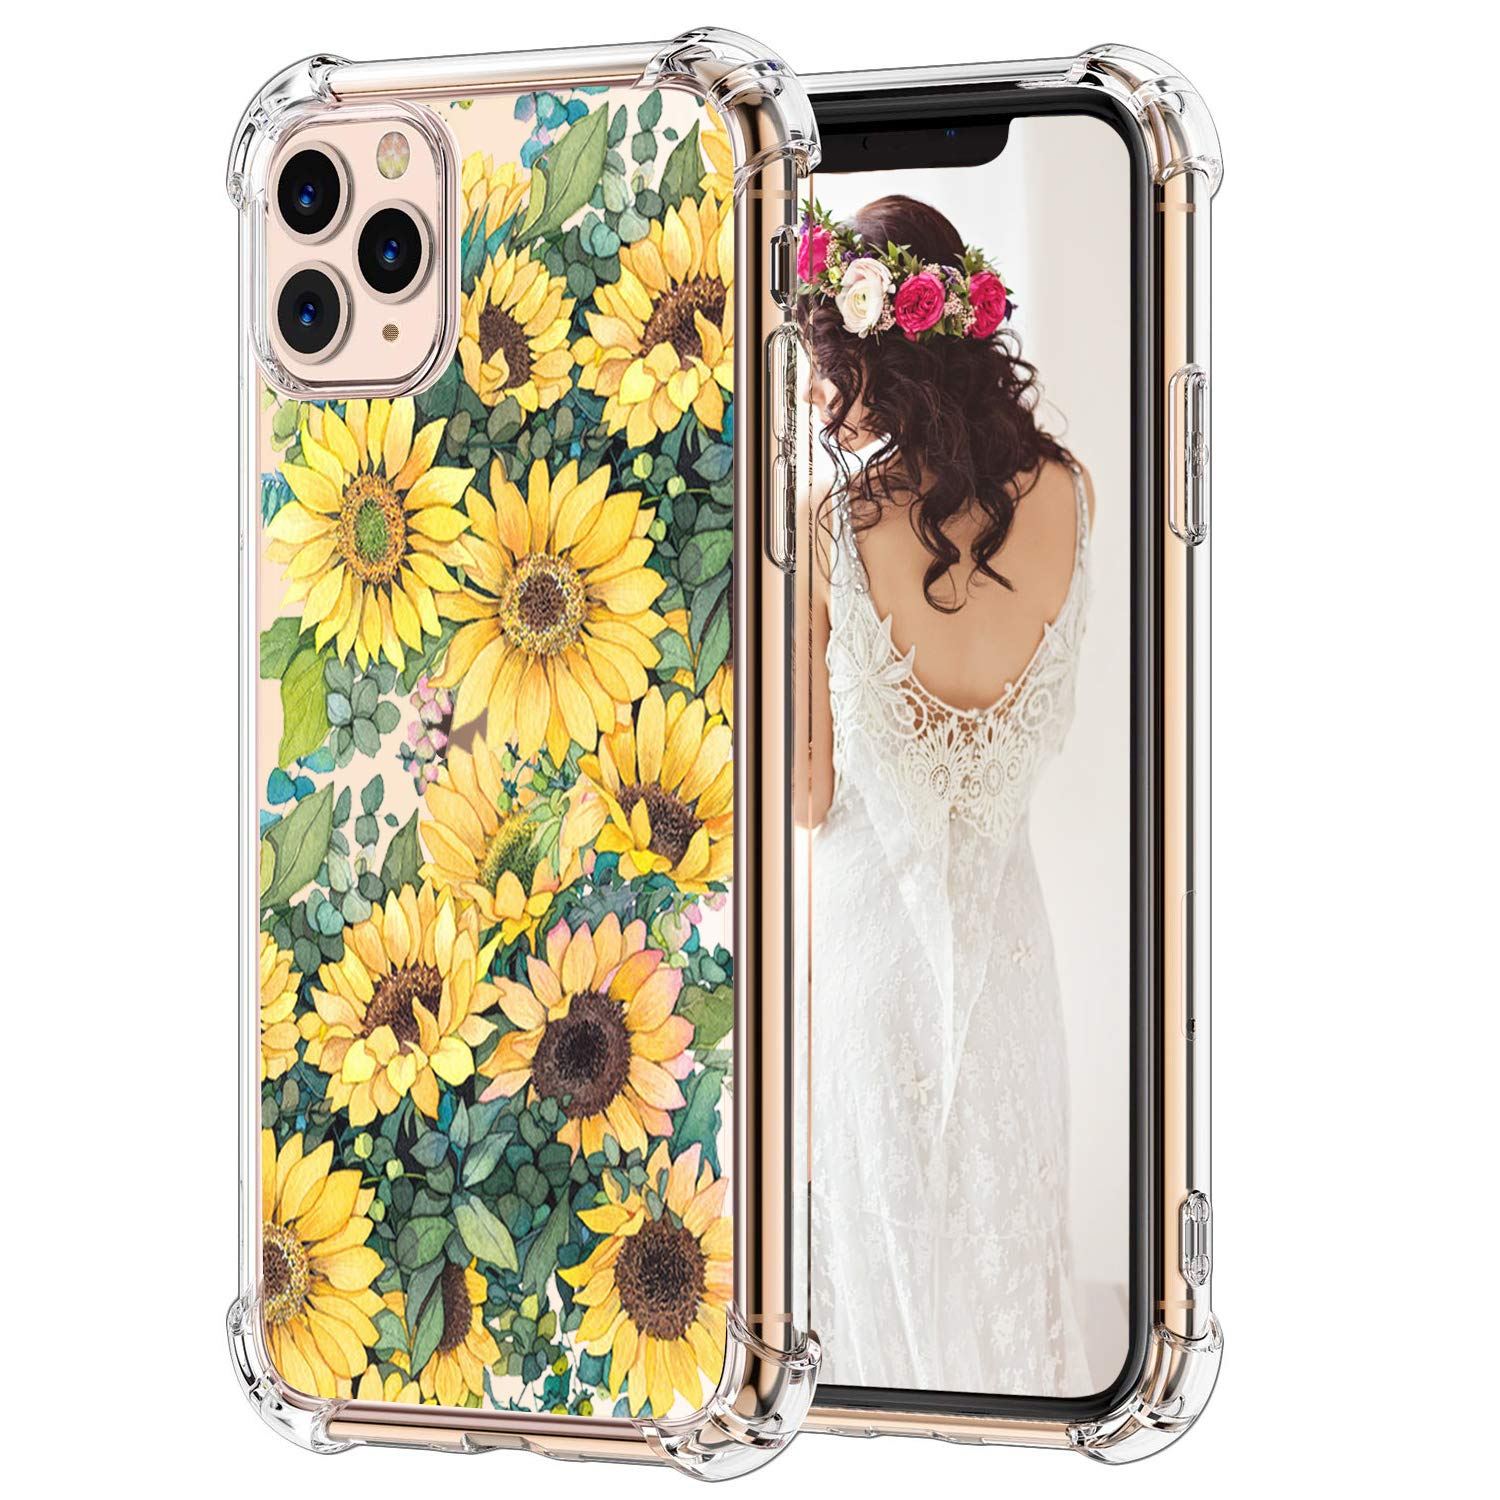 Hepix Sunflowers iPhone 11 Pro Max Case Floral Clear Pro Max iPhone Cases, Vivid Yellow Flowers Pattern Soft Flexible TPU Frame with Protective Bumpers Anti-Scratch Shock Absorbing for iPhone Pro Max